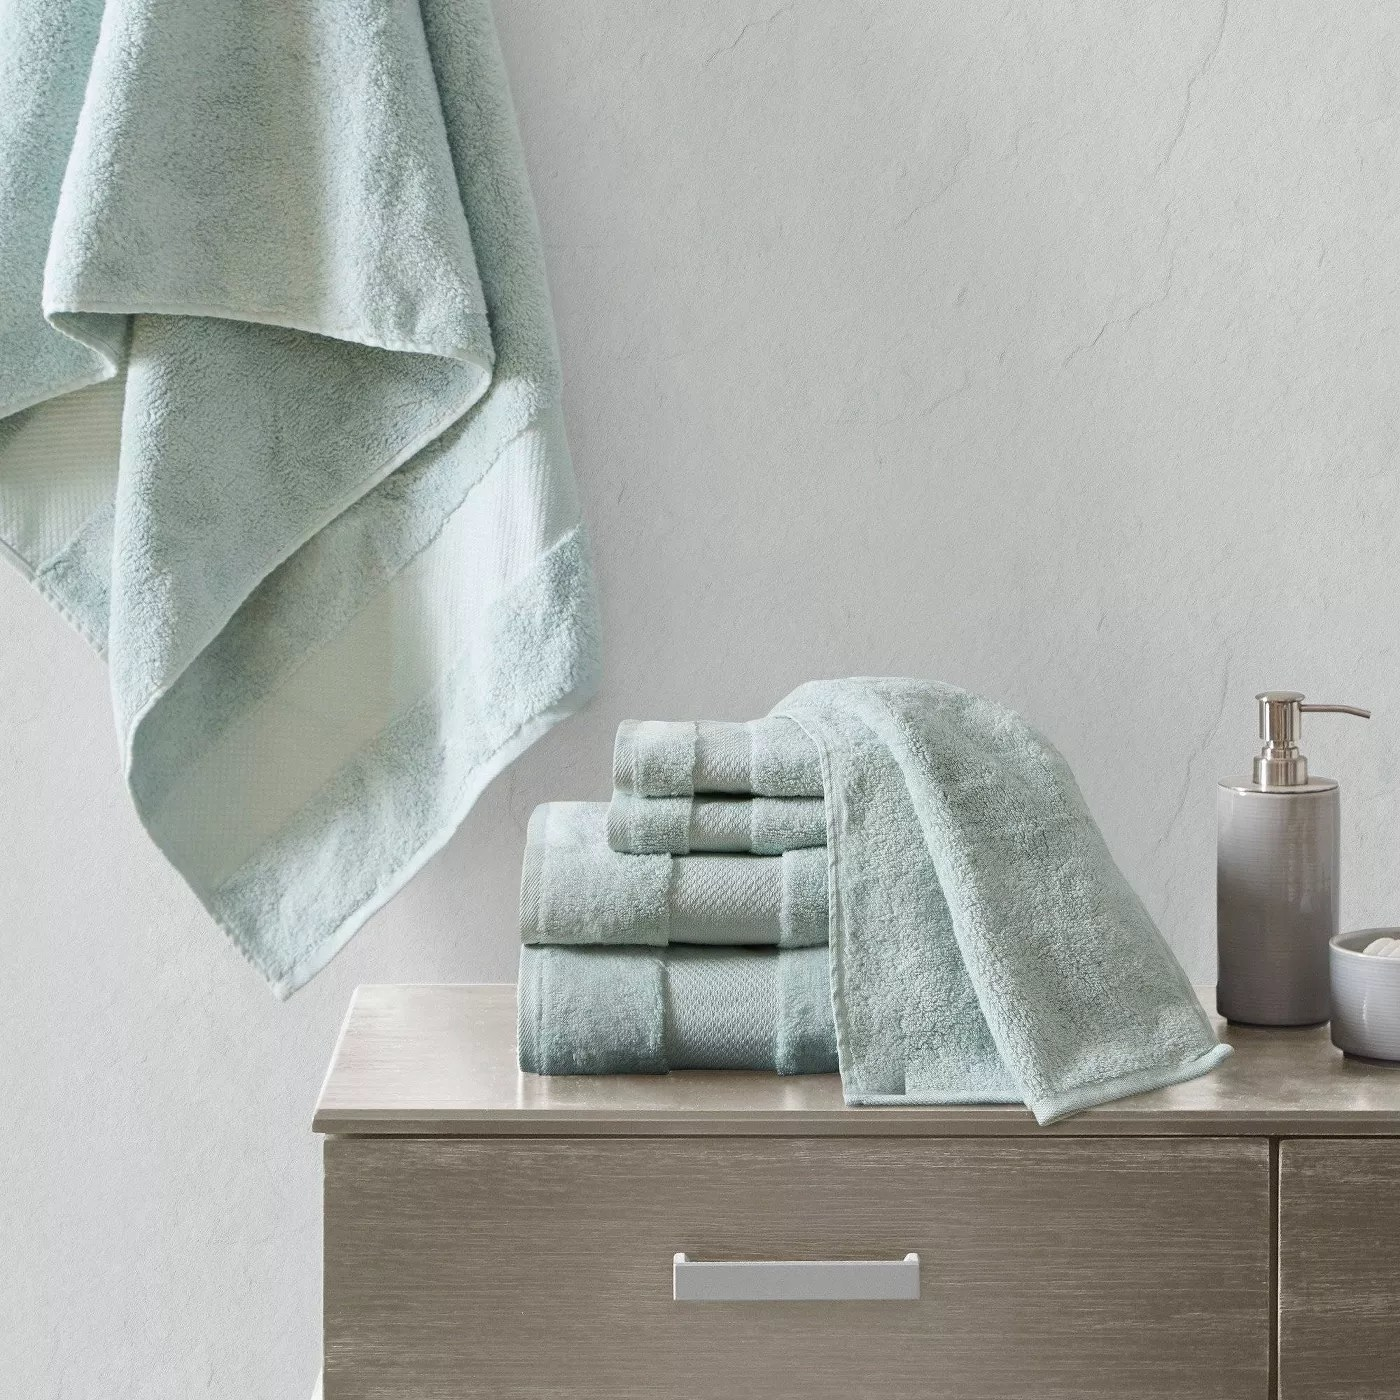 The light green towel set in a bathroom